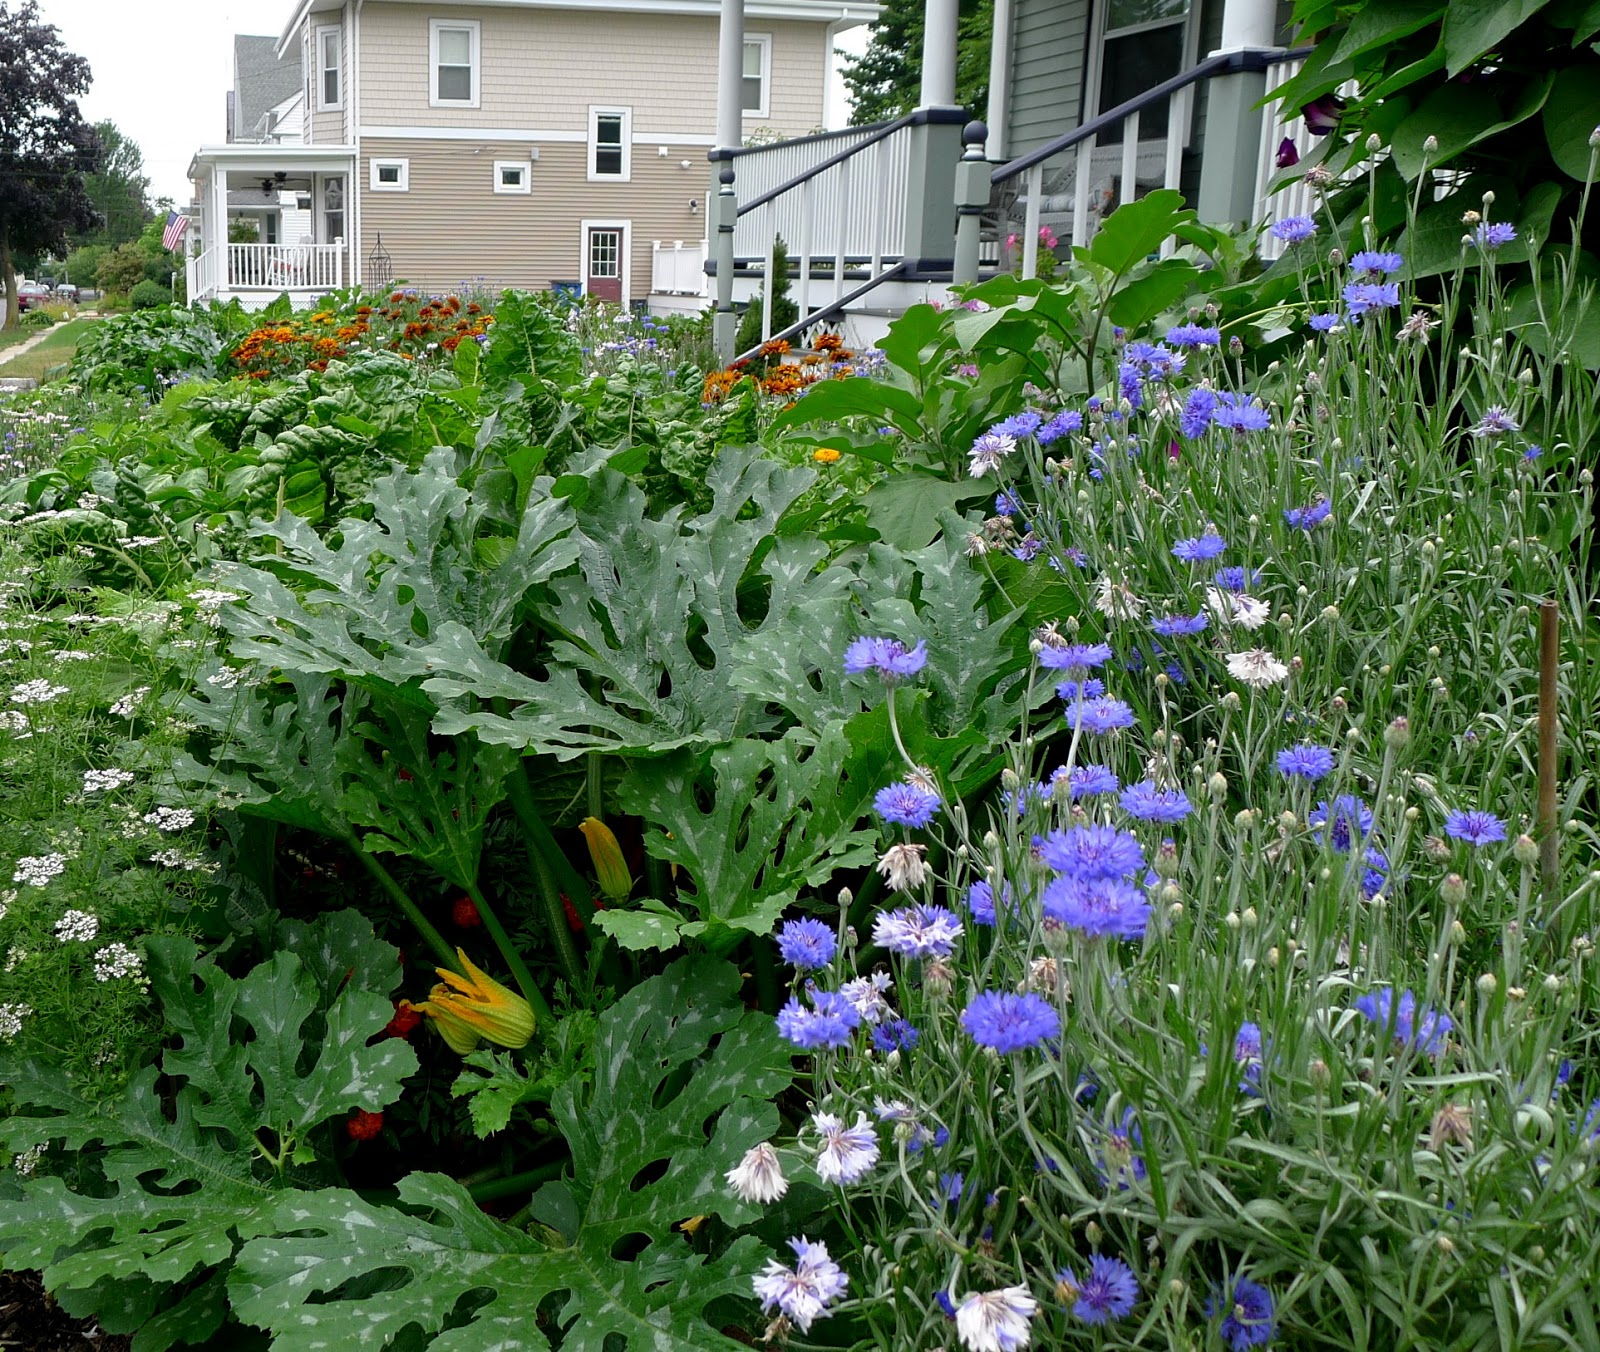 Edible Landscaping And Fairy Gardens: Less Noise, More Green: Edible Landscaping: Replacing